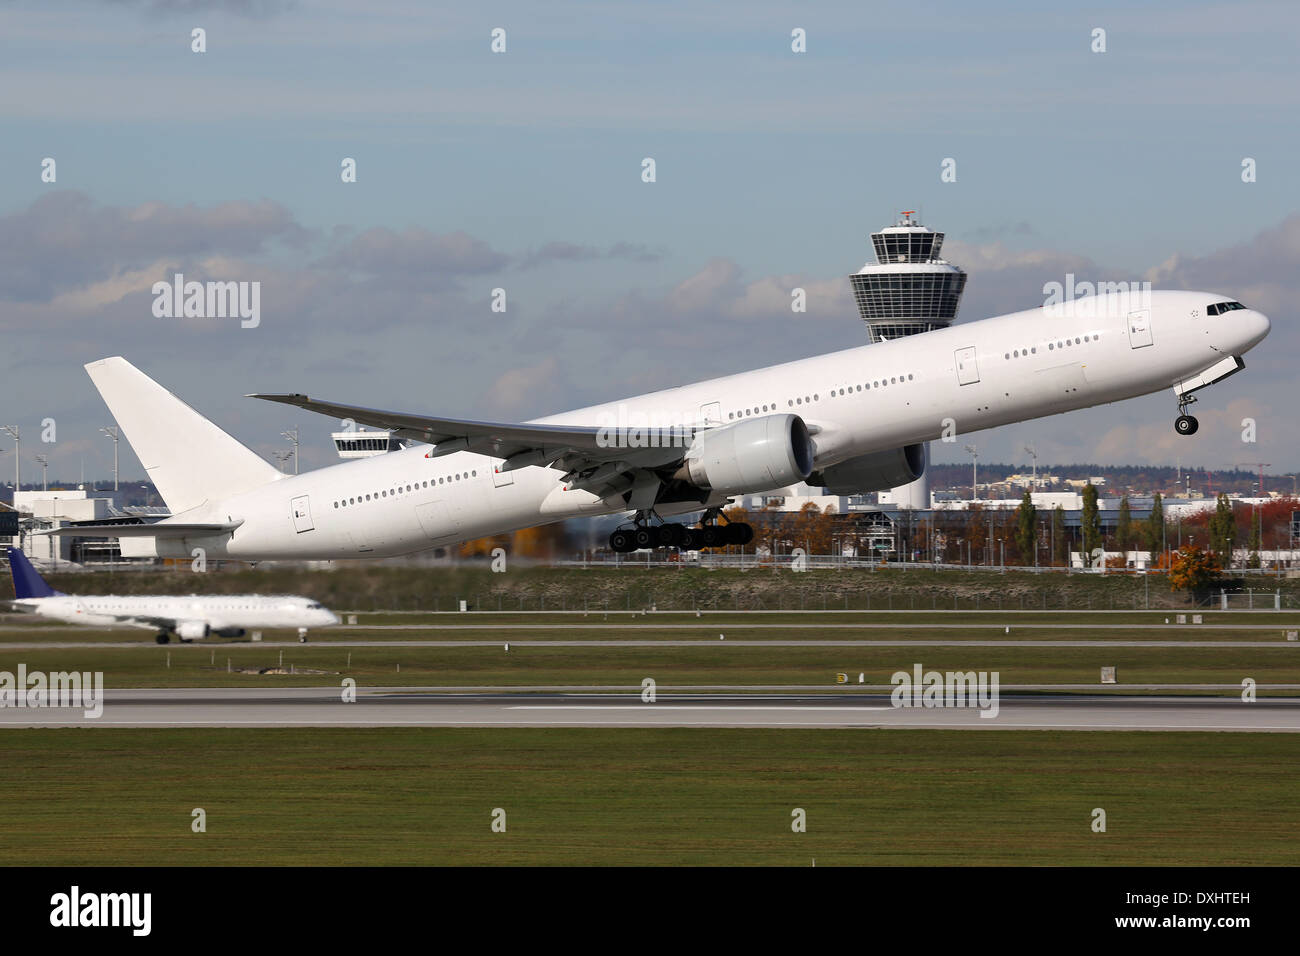 An airplane is taking off at Munich airport Stock Photo